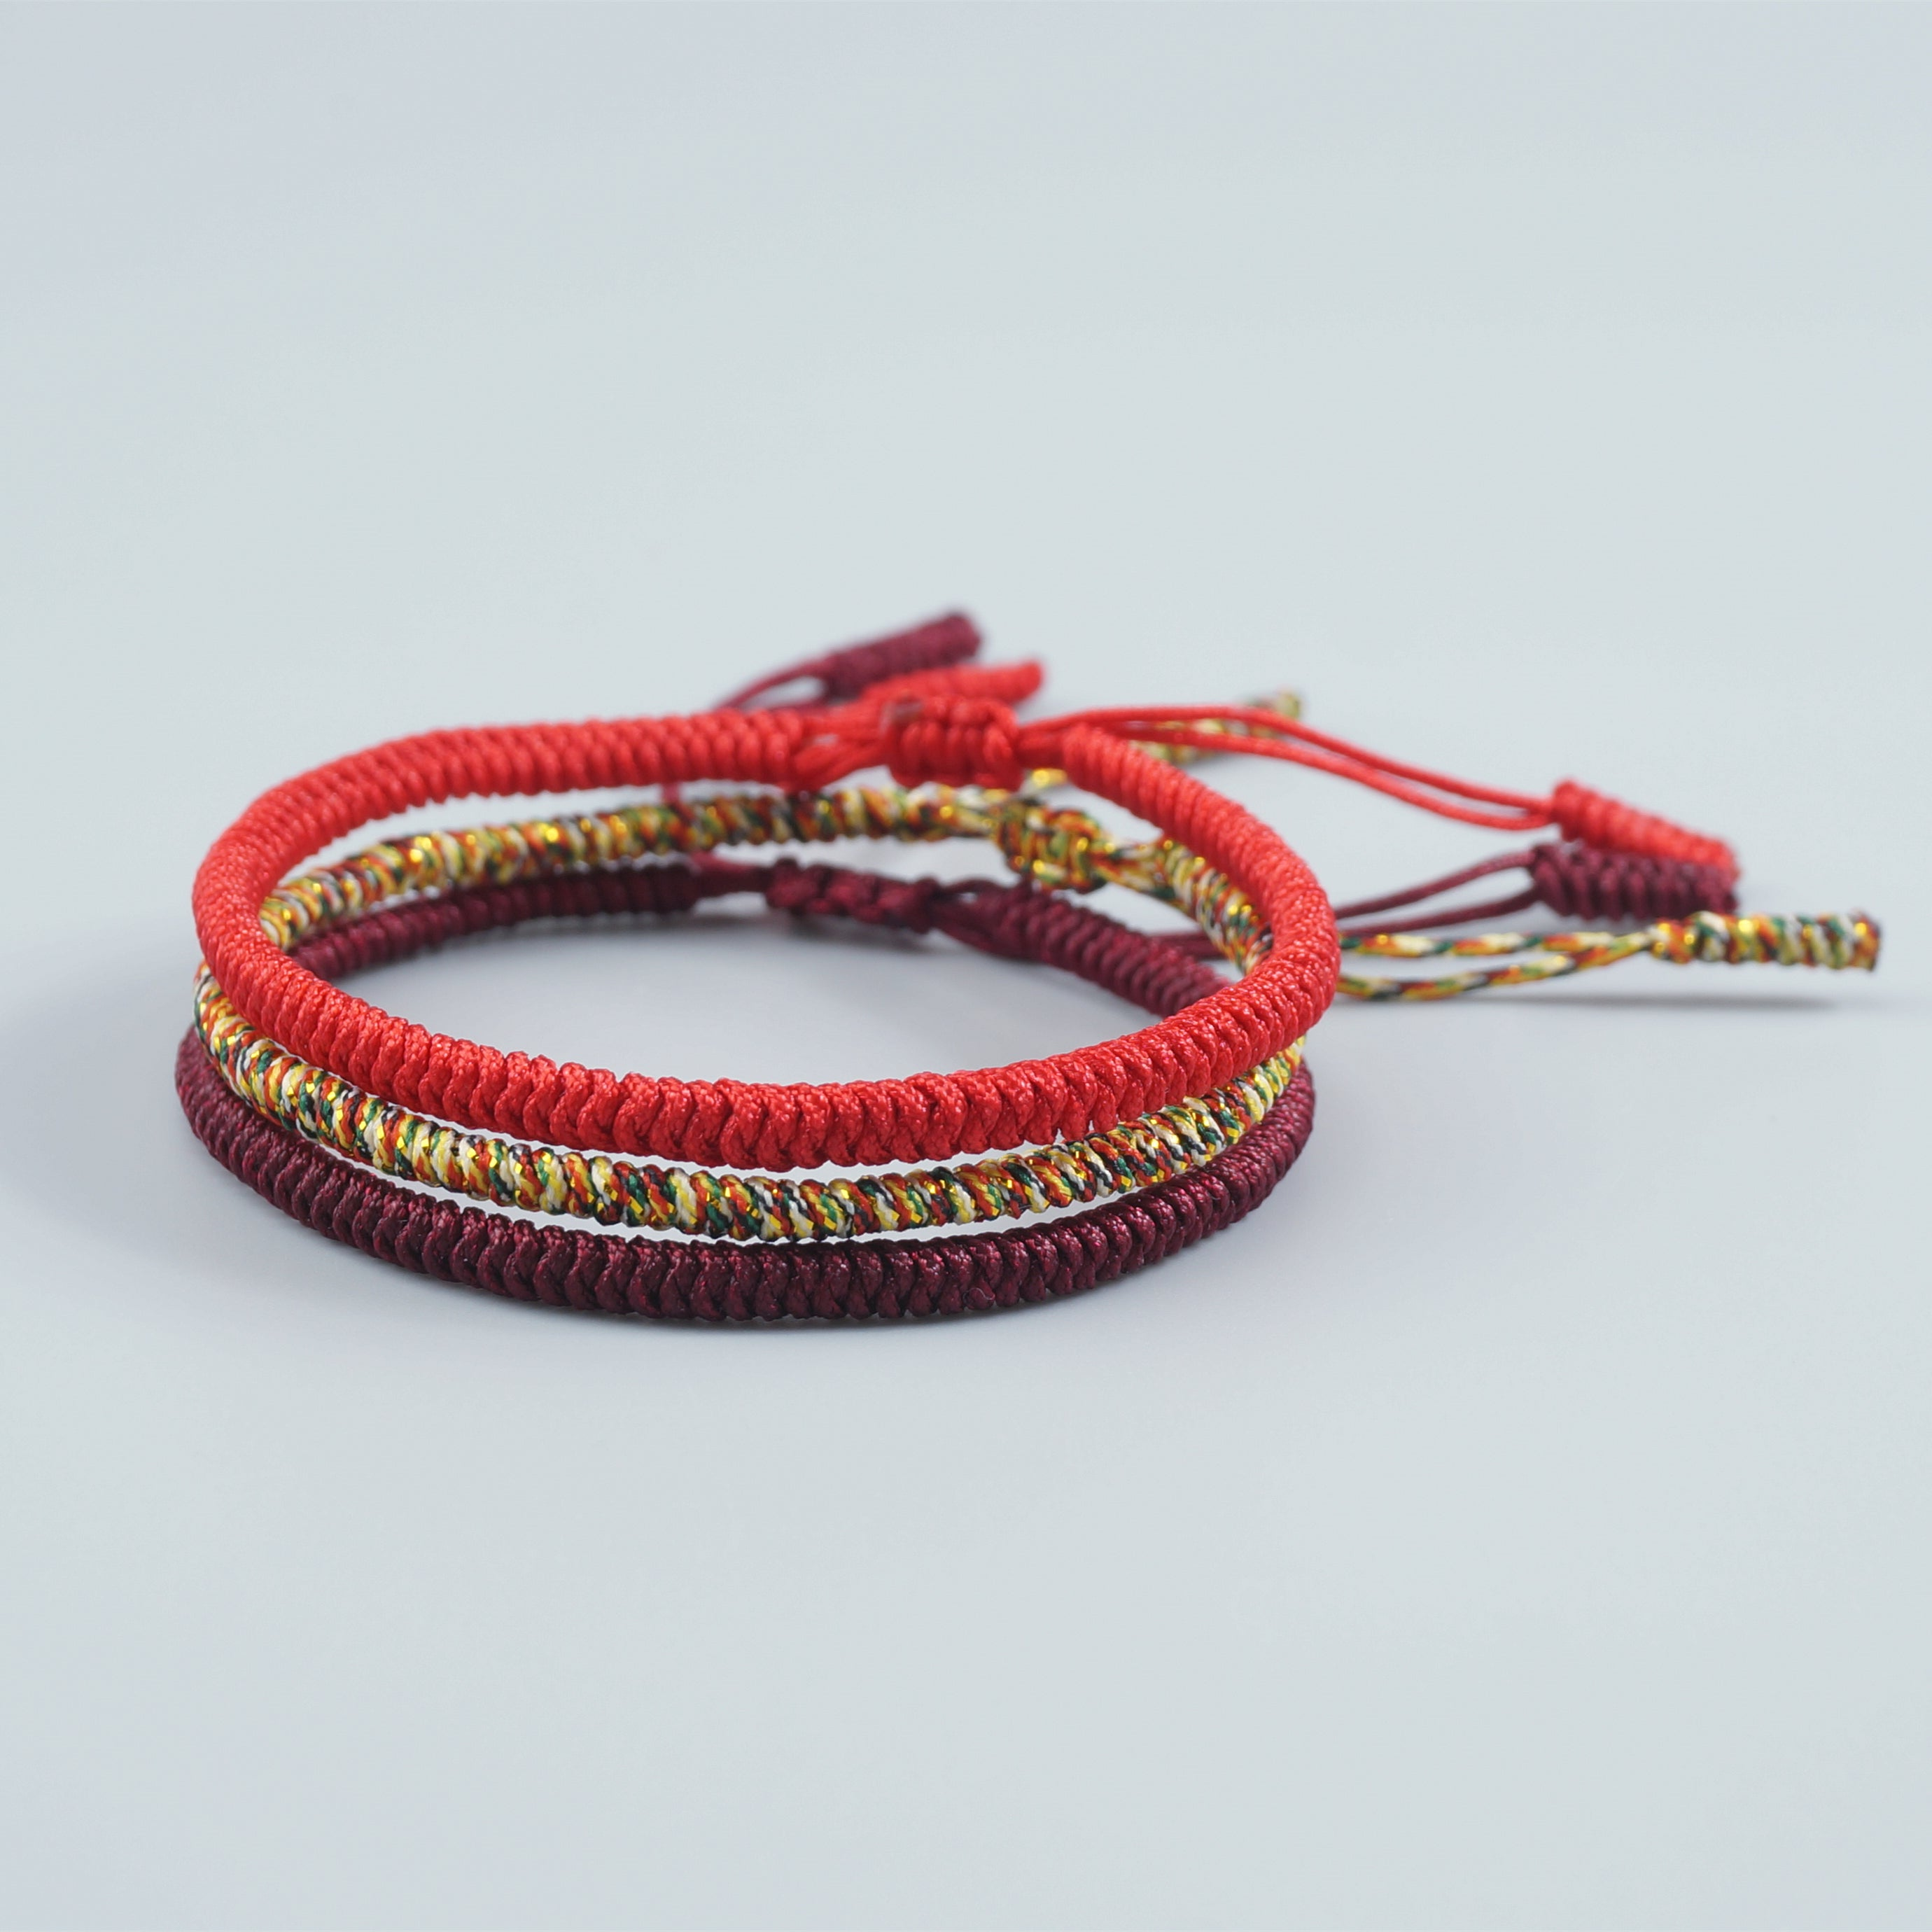 Tibetan Buddhist Lucky String Bracelets | 3PCS Protection - 7 Chakra Store